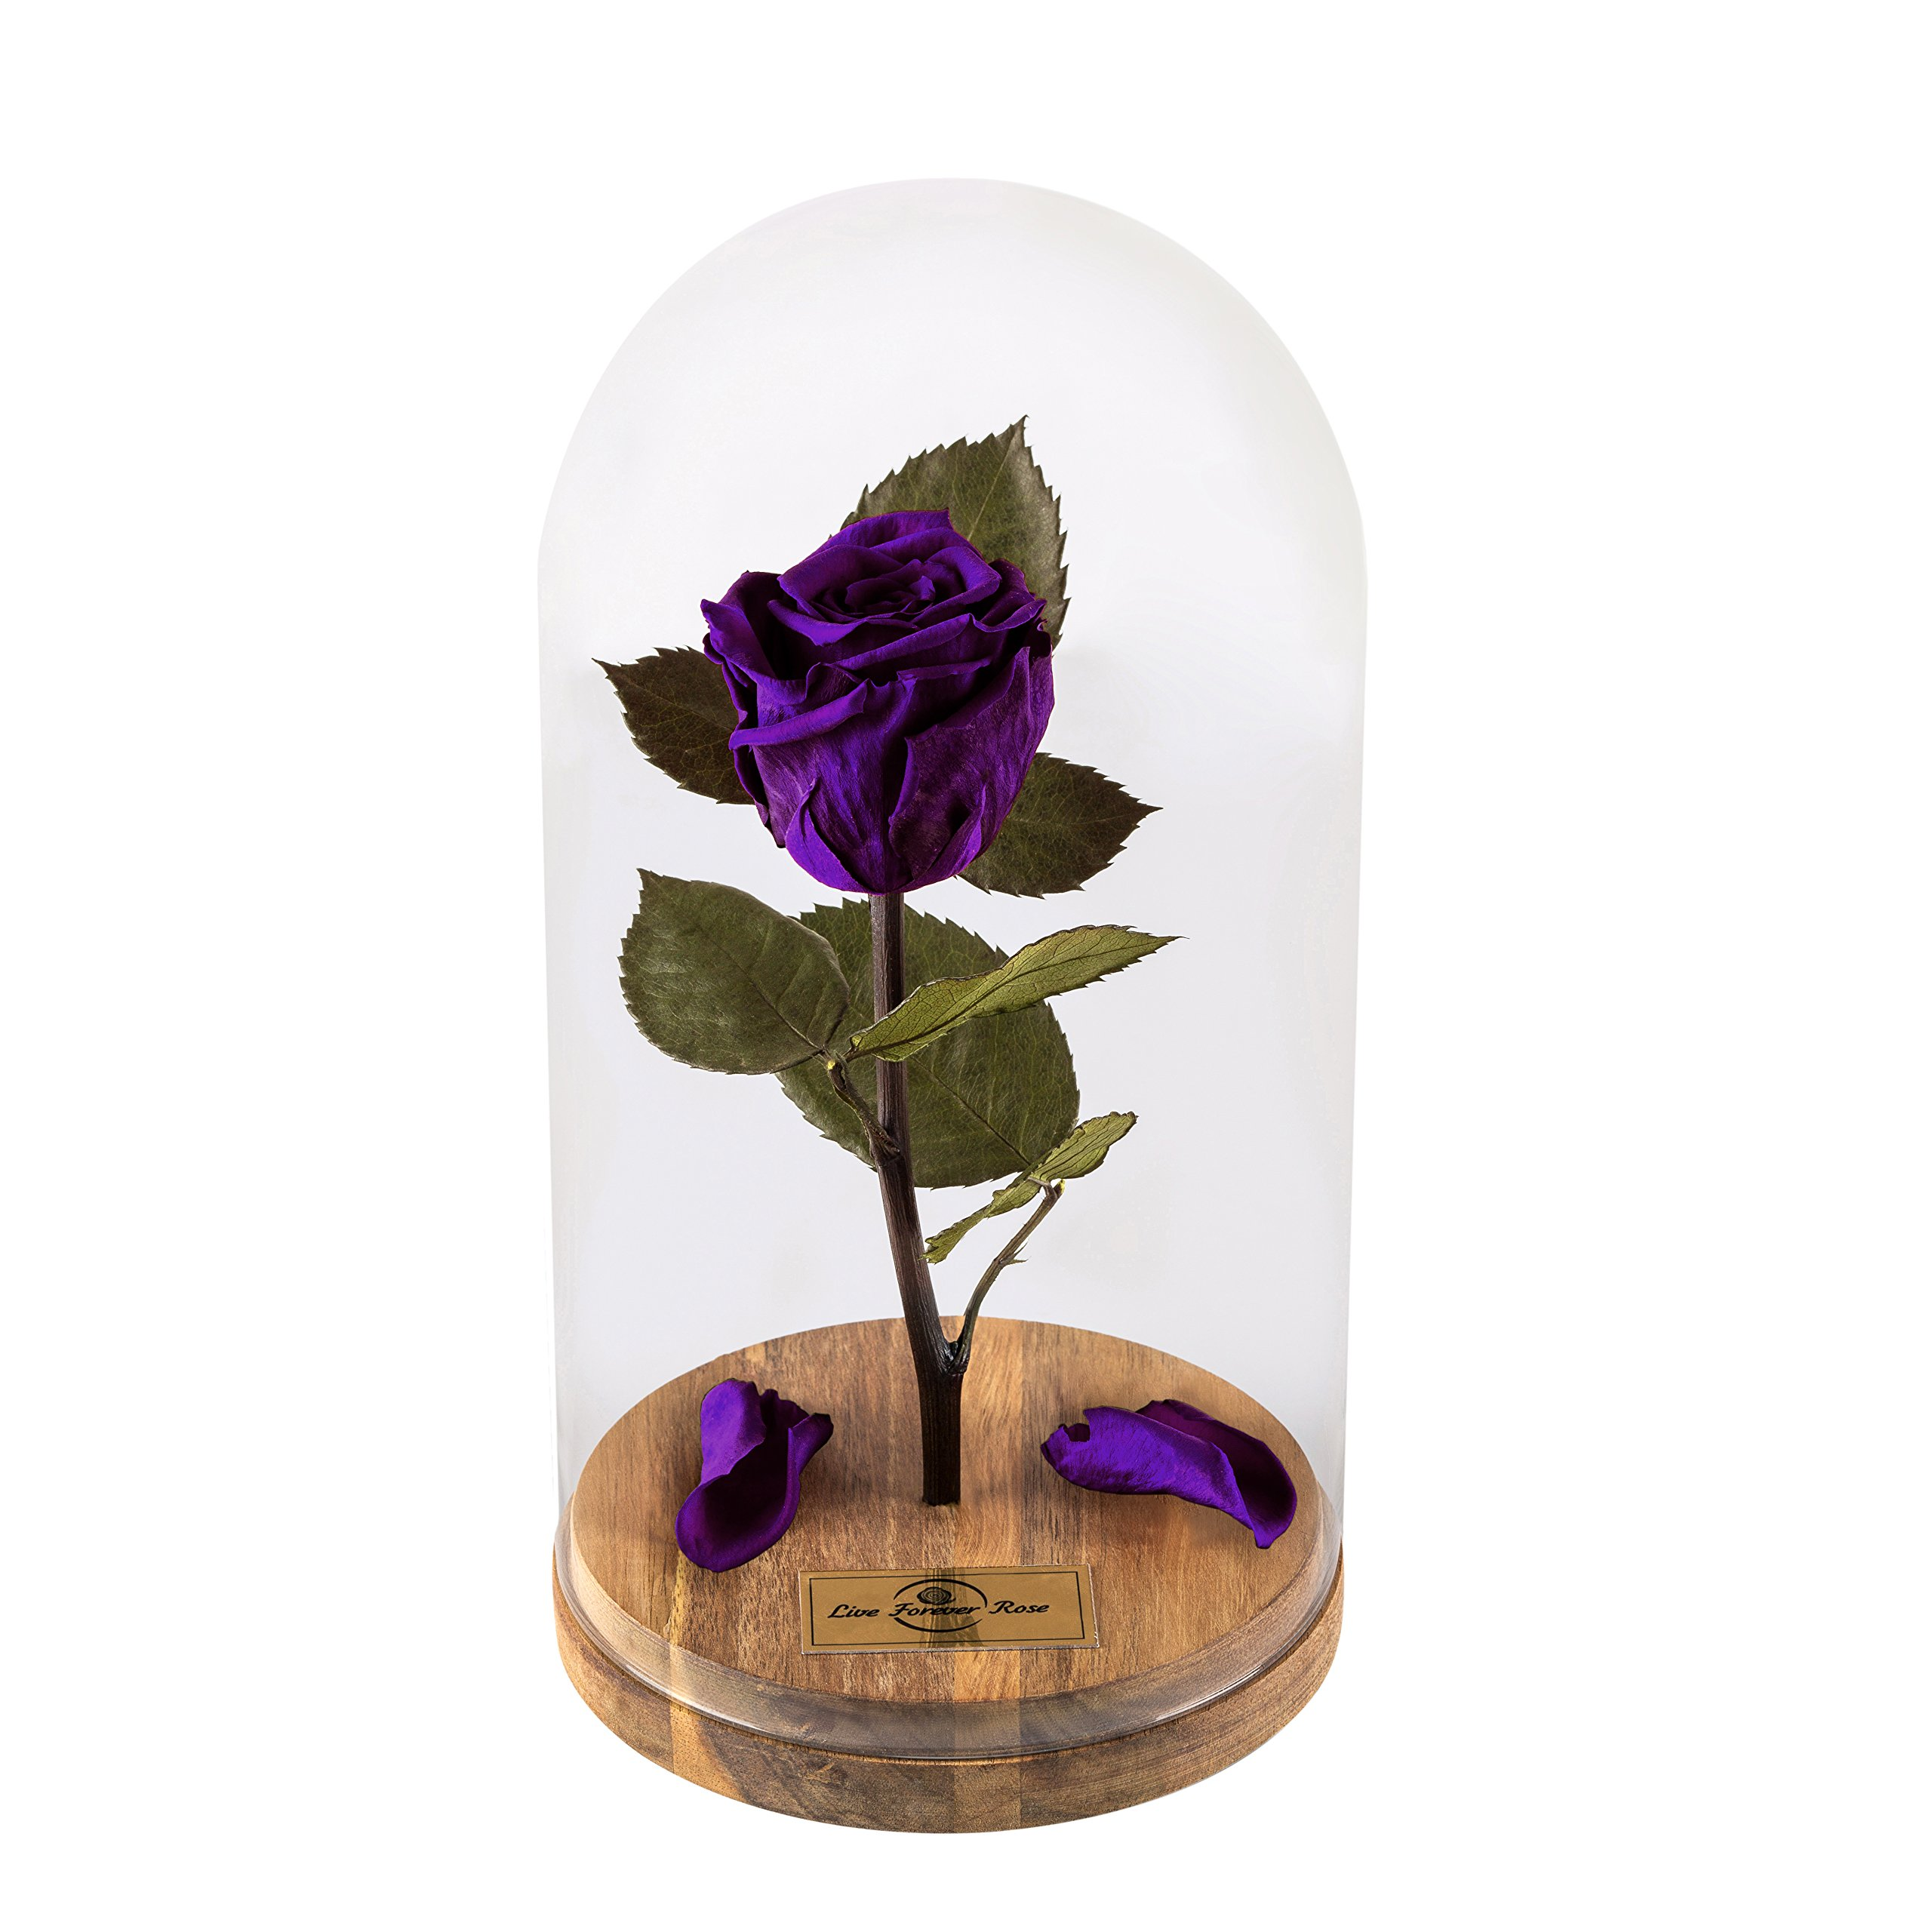 Beauty And The Beast Rose, Live Forever Rose with fallen petals in Glass Dome - Disney home decor Rose, Preserved Rose 100% Natural LFR0002 (Purple) This is a Real Rose!, mothers day gifts